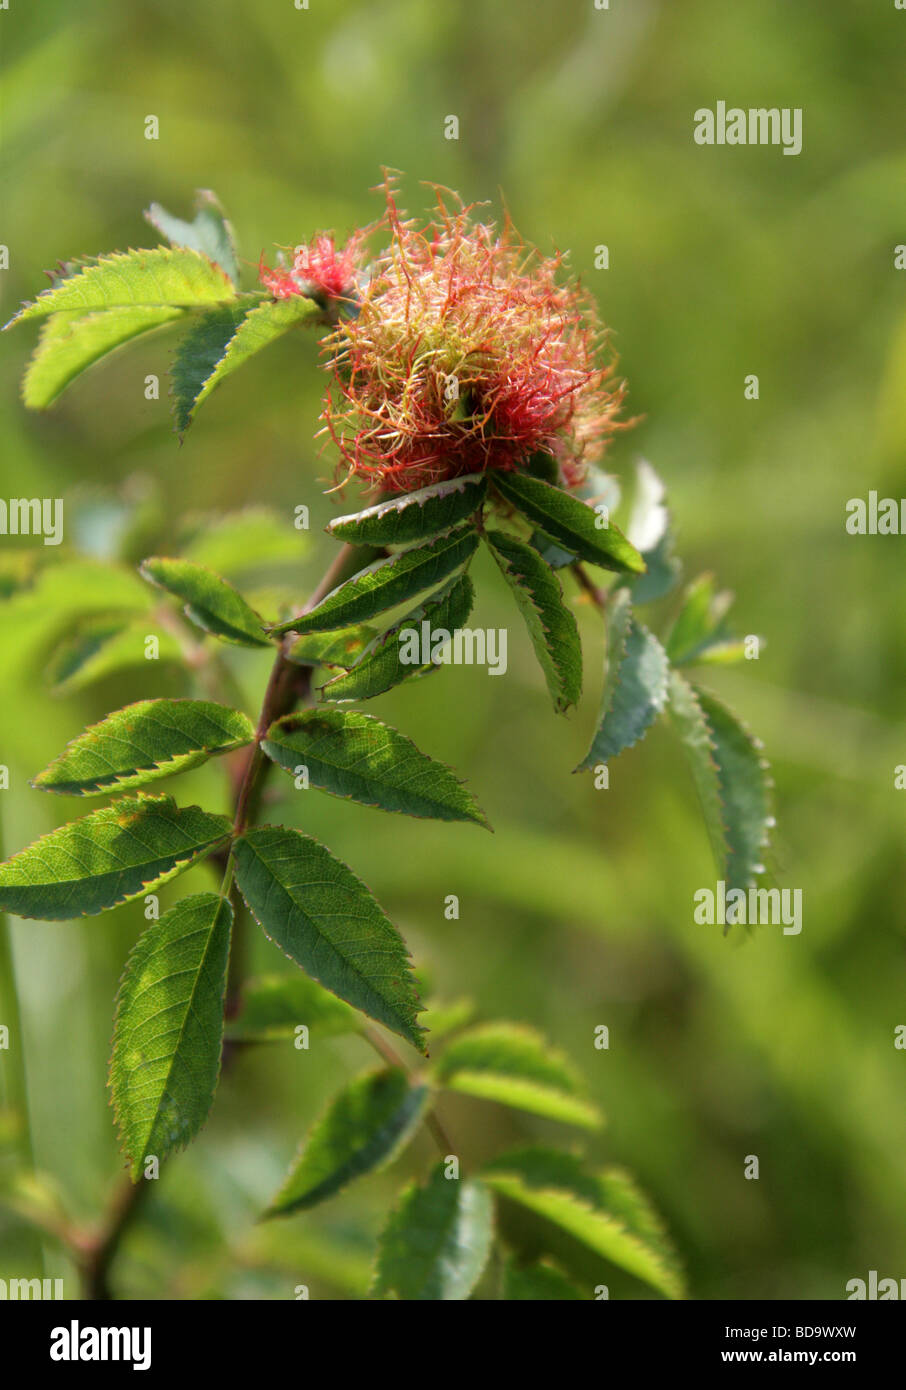 Bedeguar Gall on Dog Rose. Caused by the Parasitic Mossy Rose Gall Wasp, Diplolepis rosae, Cynipoidea, Hymenoptera. - Stock Image